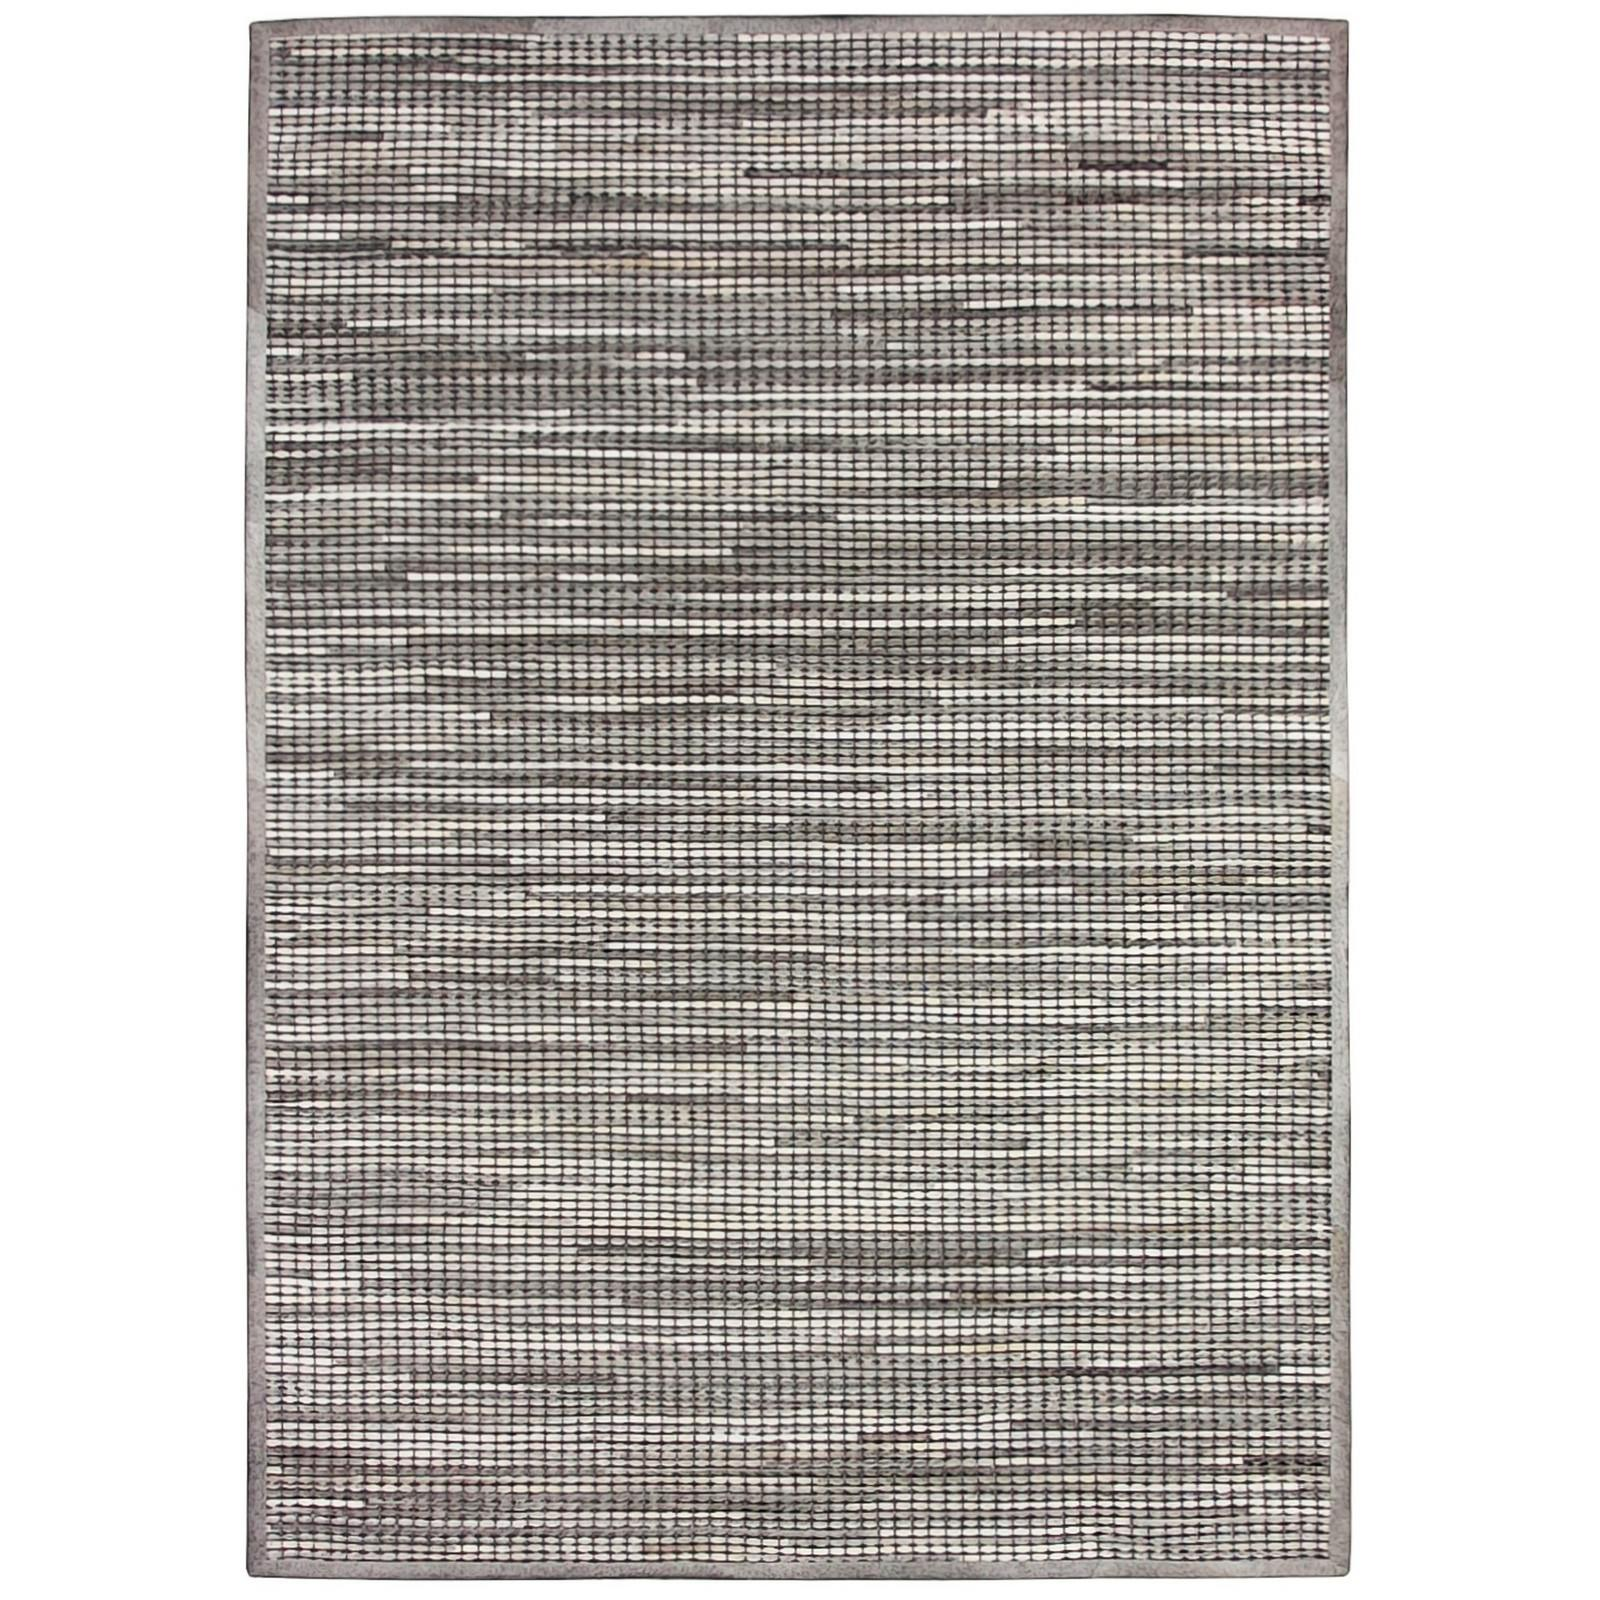 Chase Handwoven Hide & Leather Rug, 250x300cm, Grey